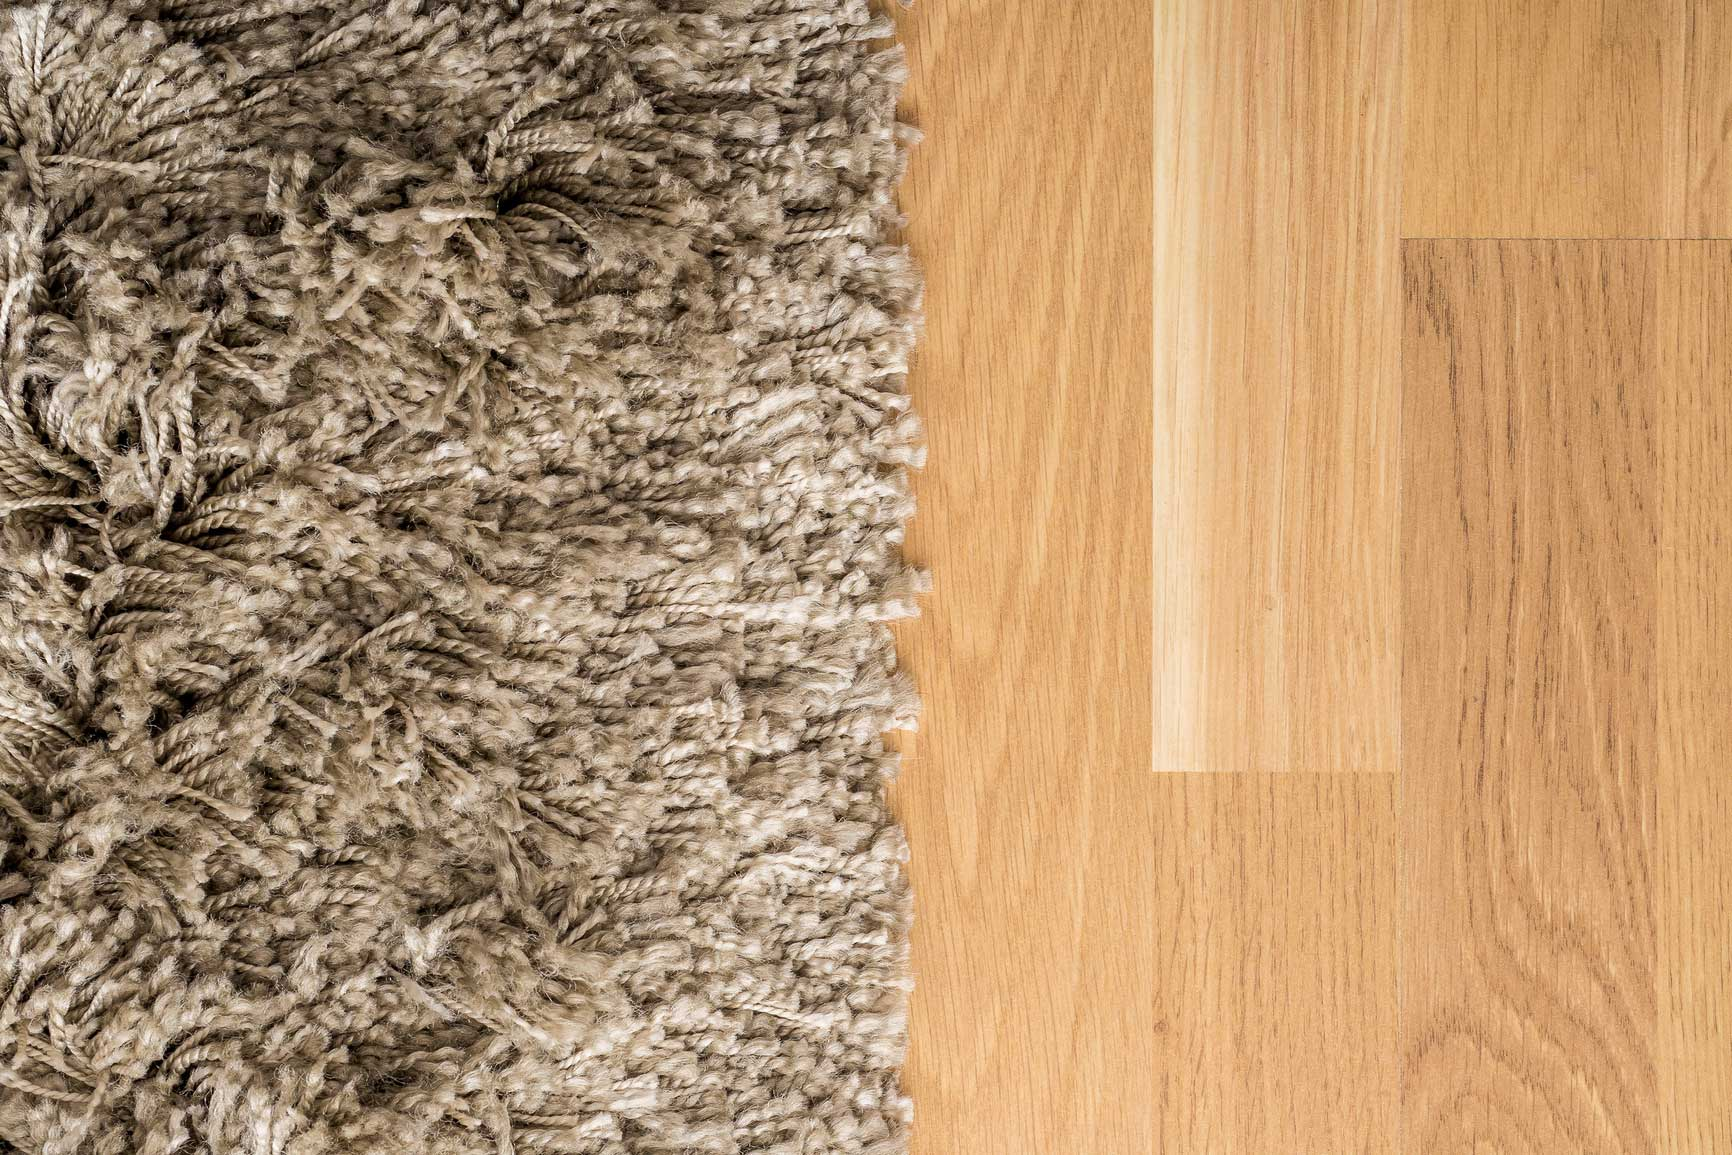 carpet-or-wood-floors